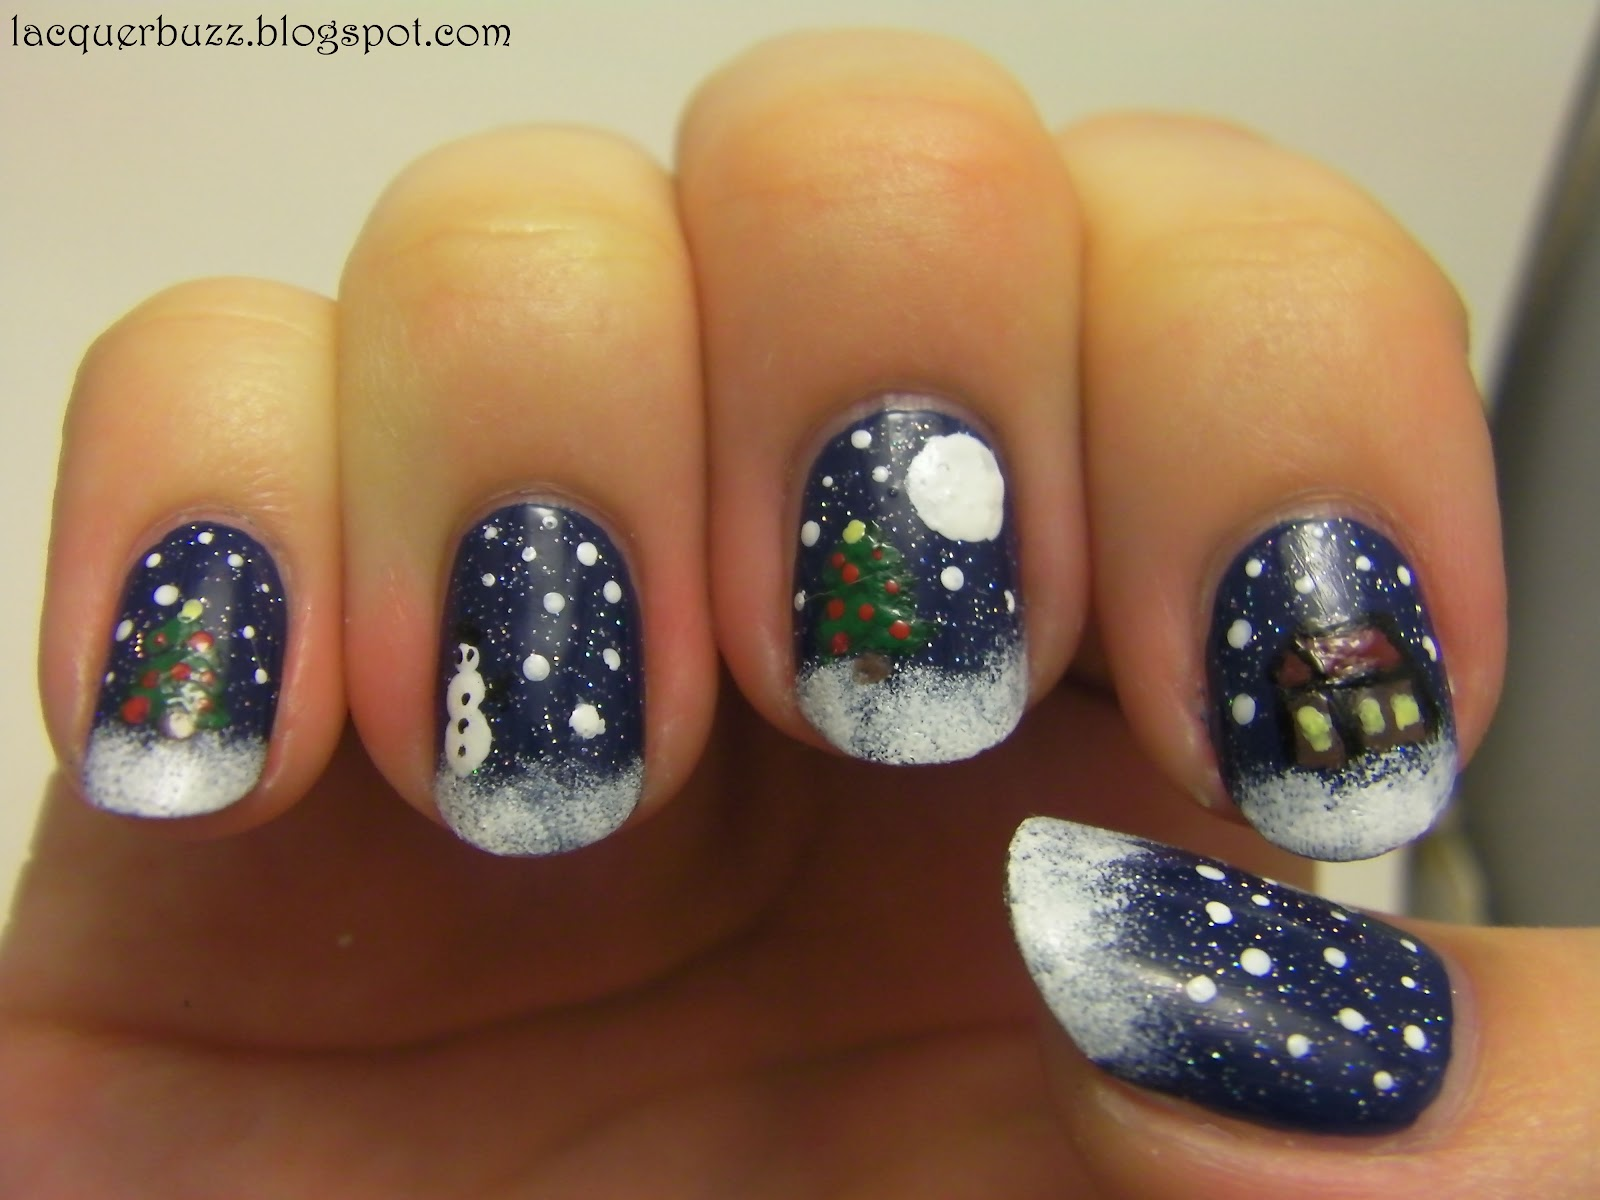 Lacquer Buzz: Twas the night before Christmas